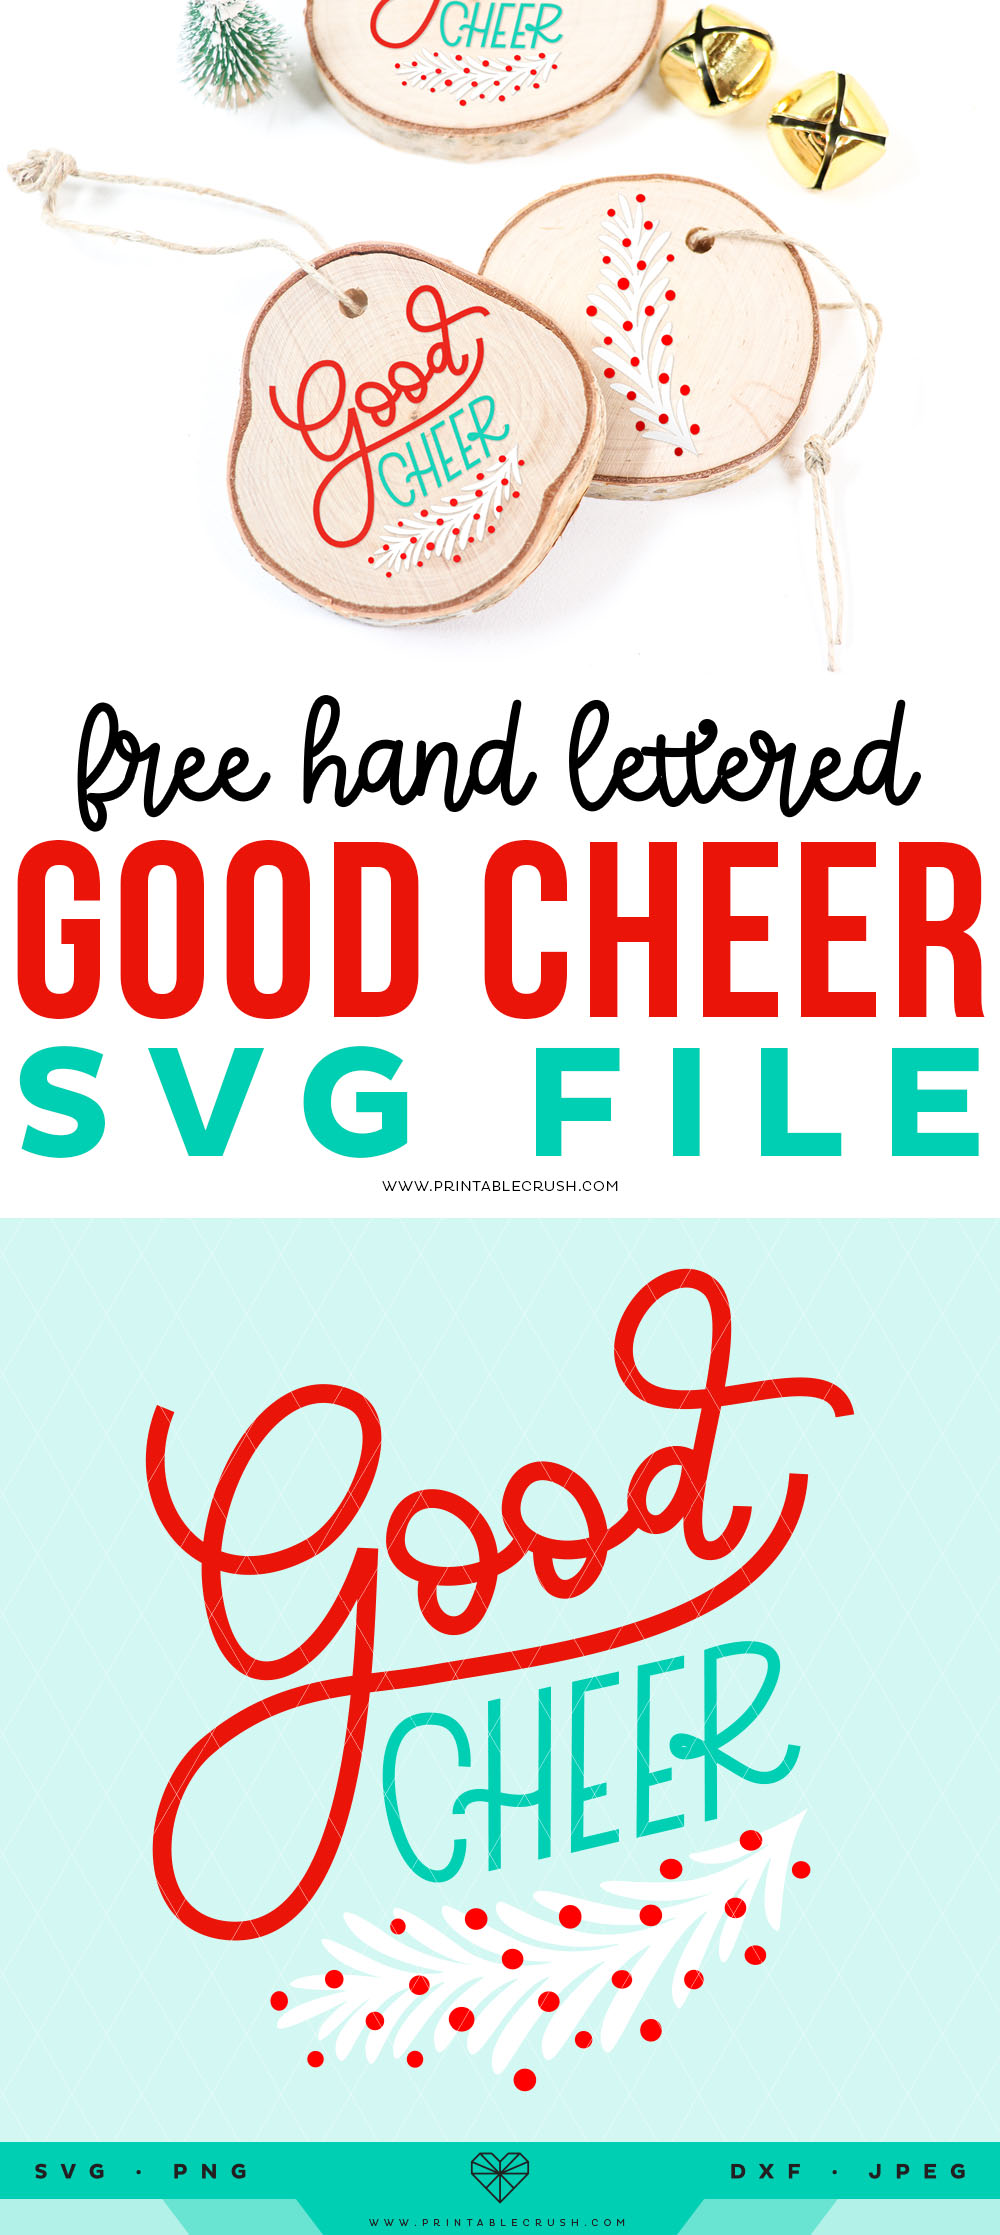 Free Hand Lettered Good Cheer SVG File - Christmas SVG File - Christmas Wood Ornaments - Printable Crush